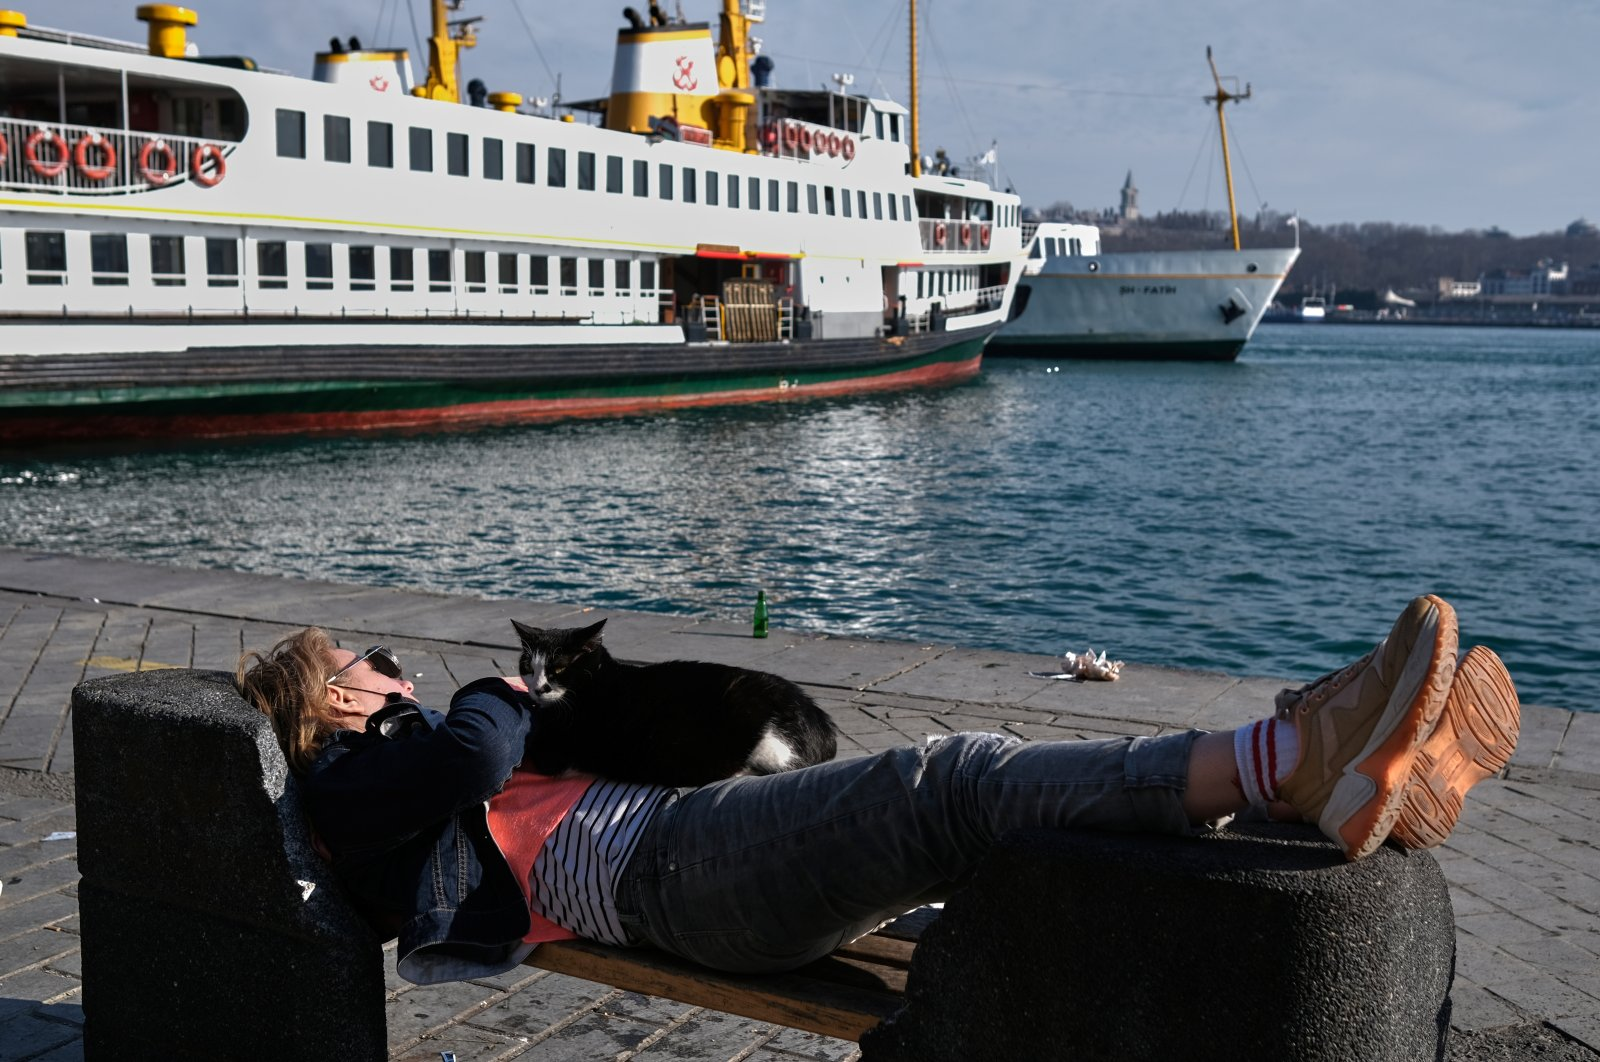 A tourist takes a nap on a bench by the Bosporus during a local Sunday lockdown imposed to slow the rate of the coronavirus contagion in Istanbul, Turkey March 14, 2021. (Reuters Photo)